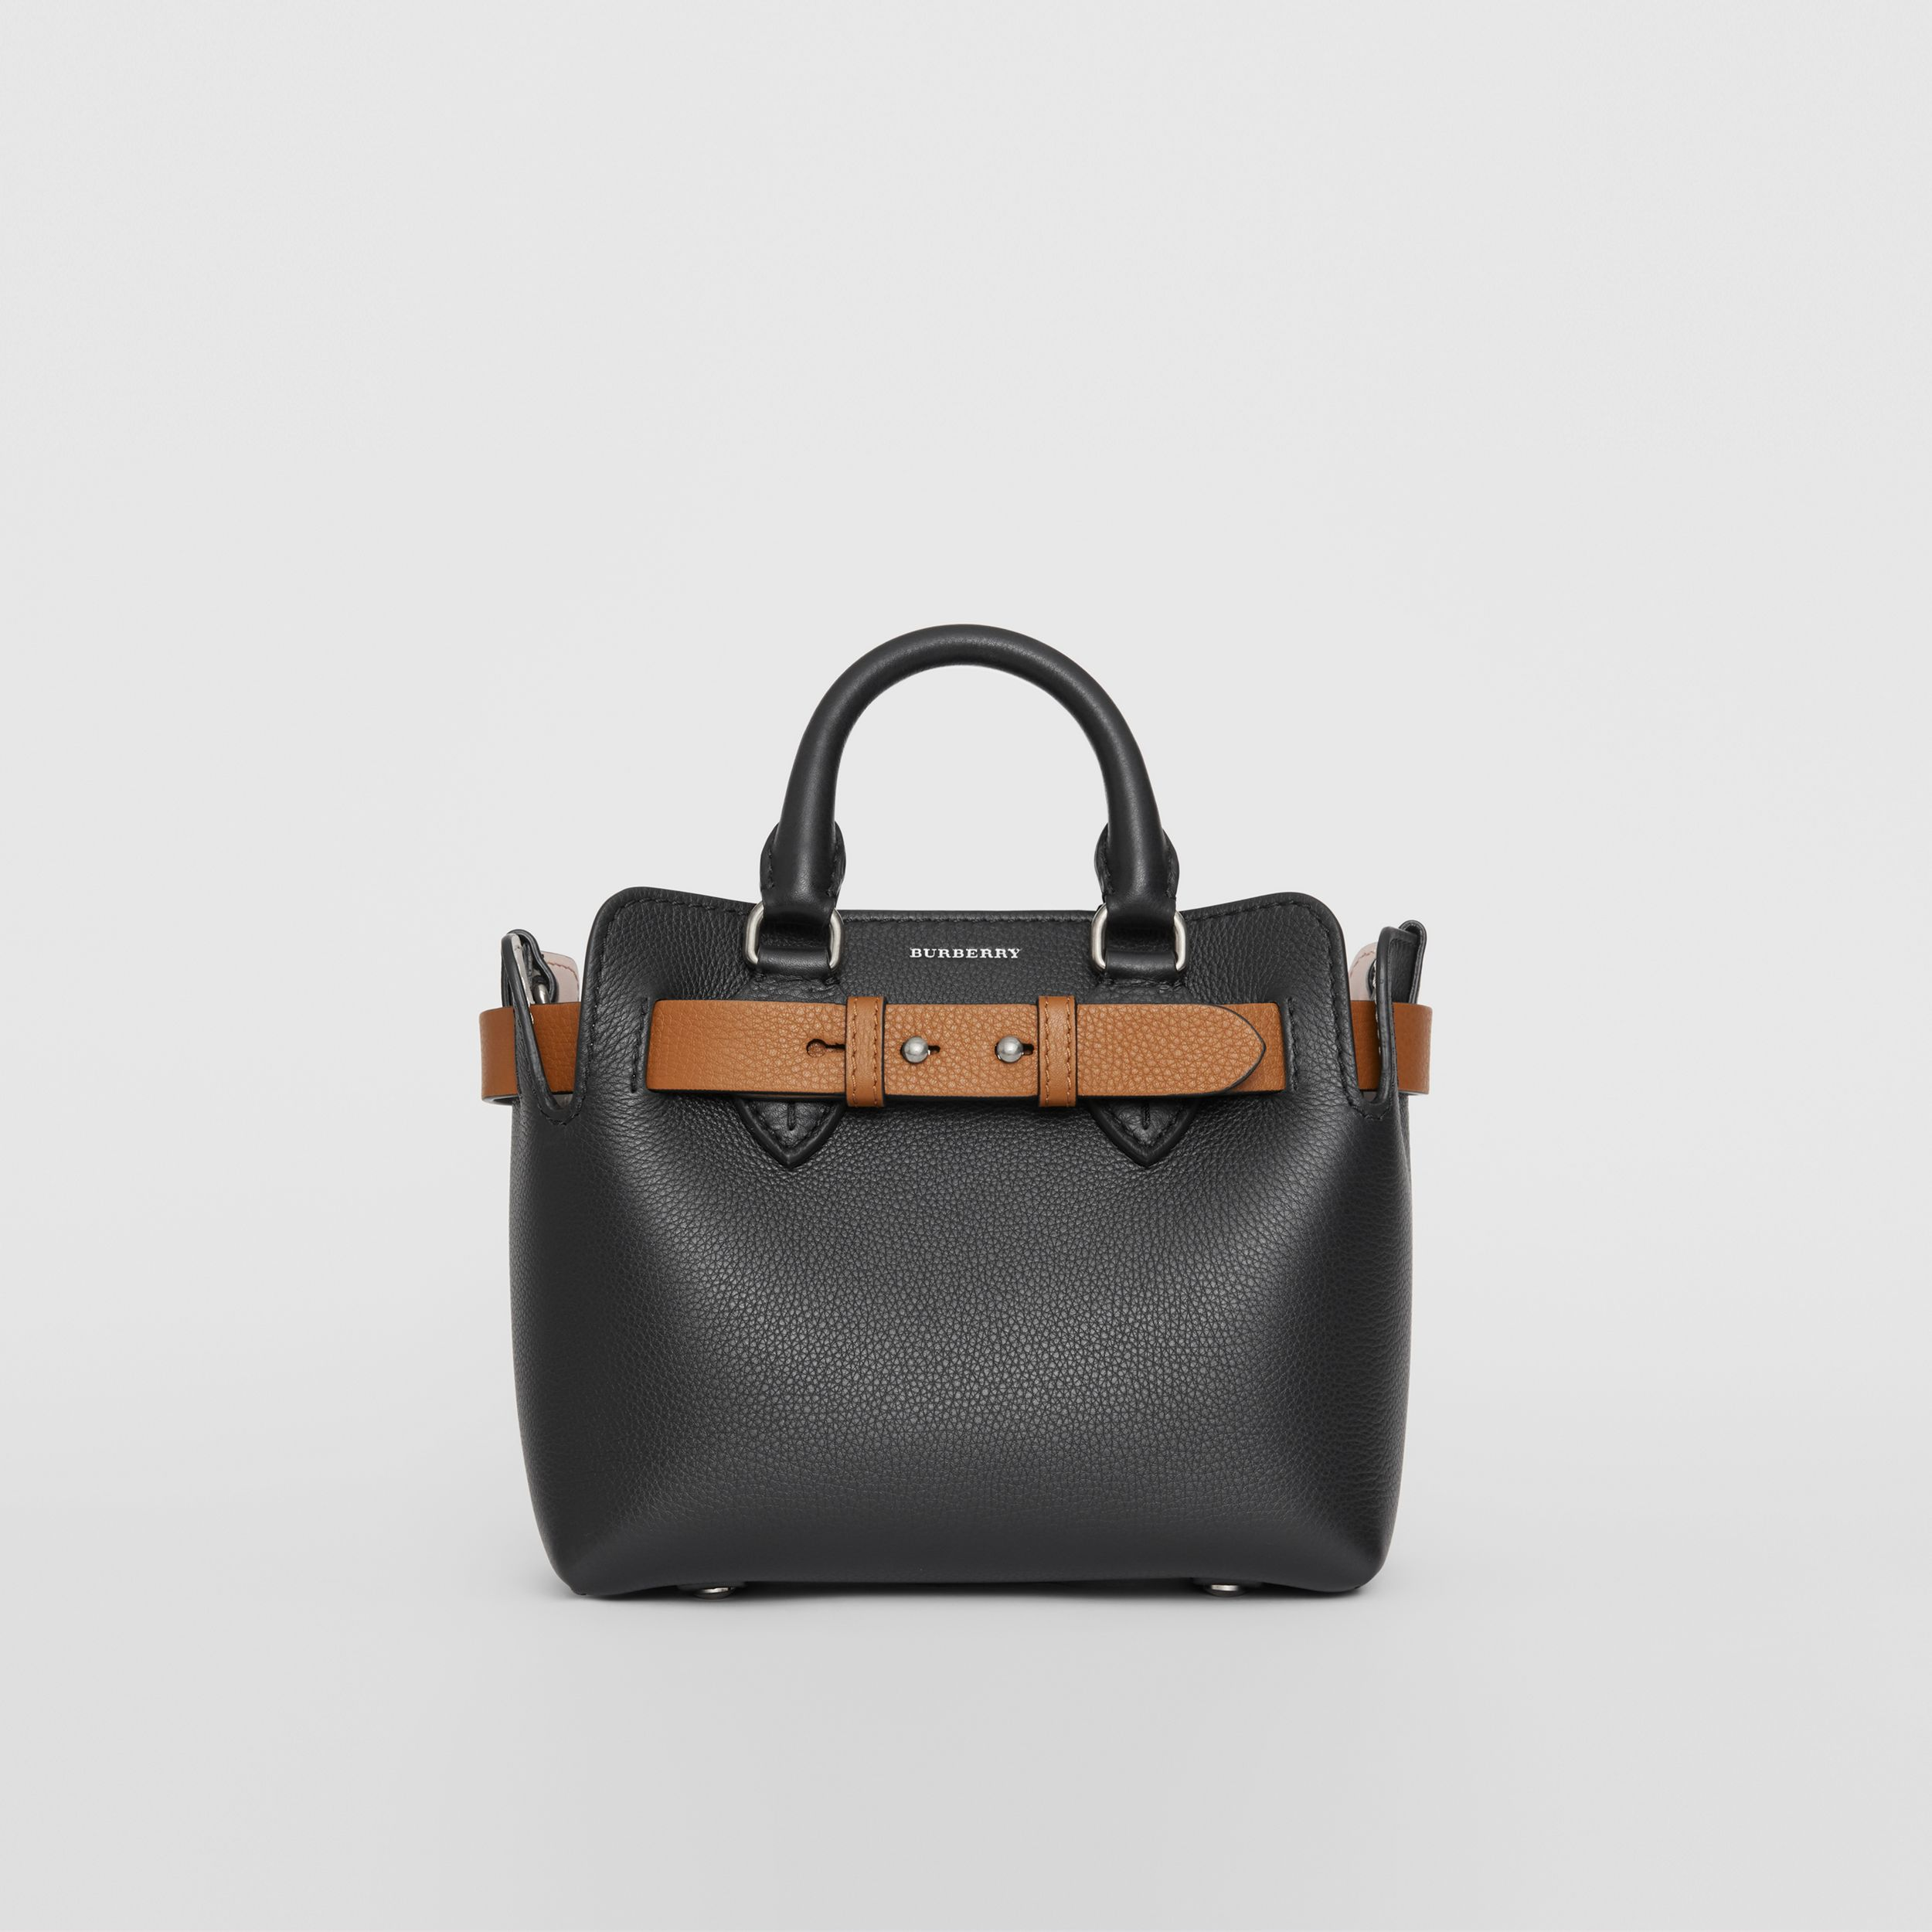 Mini sac The Belt en cuir (Noir) - Femme | Burberry Canada - 1